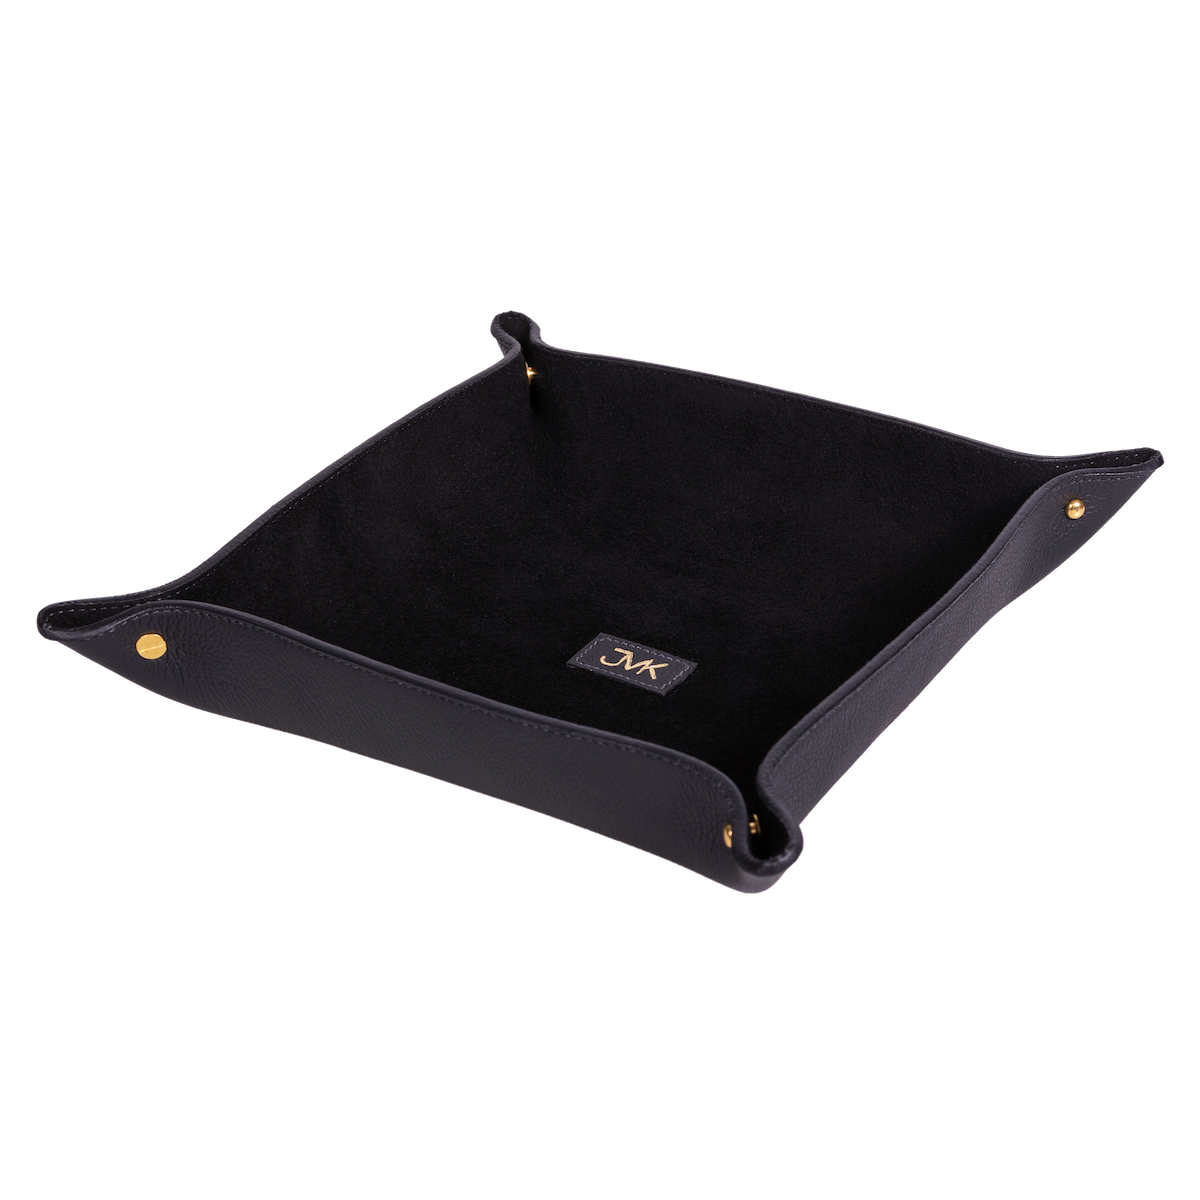 Change Tray, Grain Leather Black/Black, MAISON JMK-VONMEL Luxe Gifts